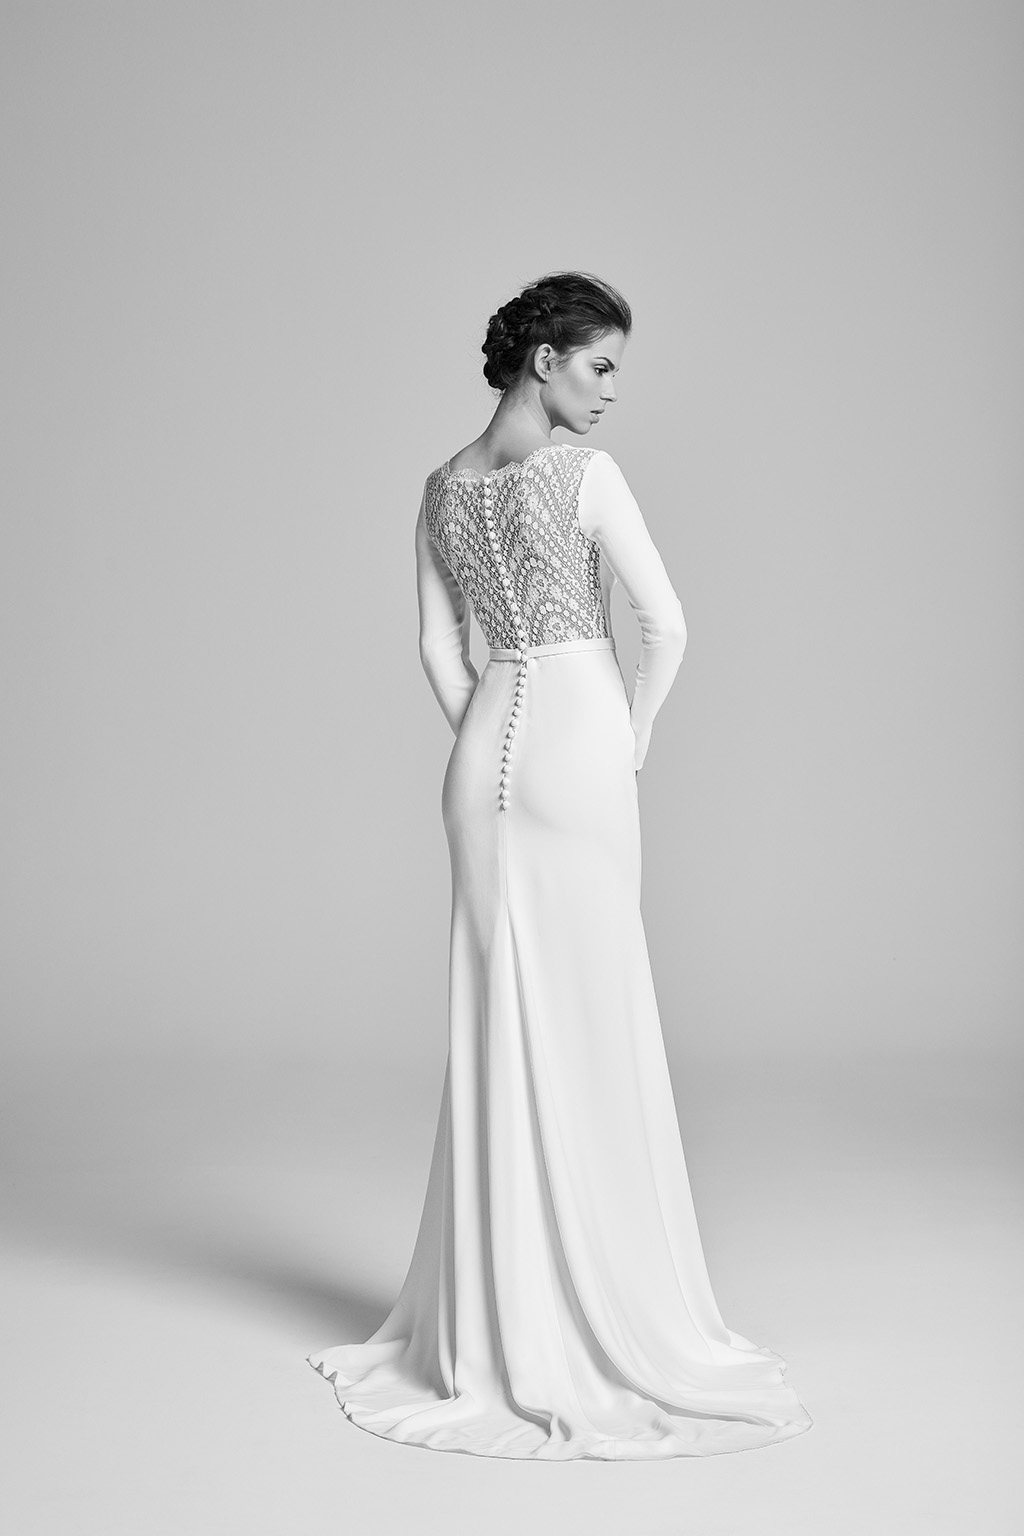 geddess-back-bridalcouture-wedding-dresses-uk-belle-epoque-collection-2018-by-designer-suzanne-neville